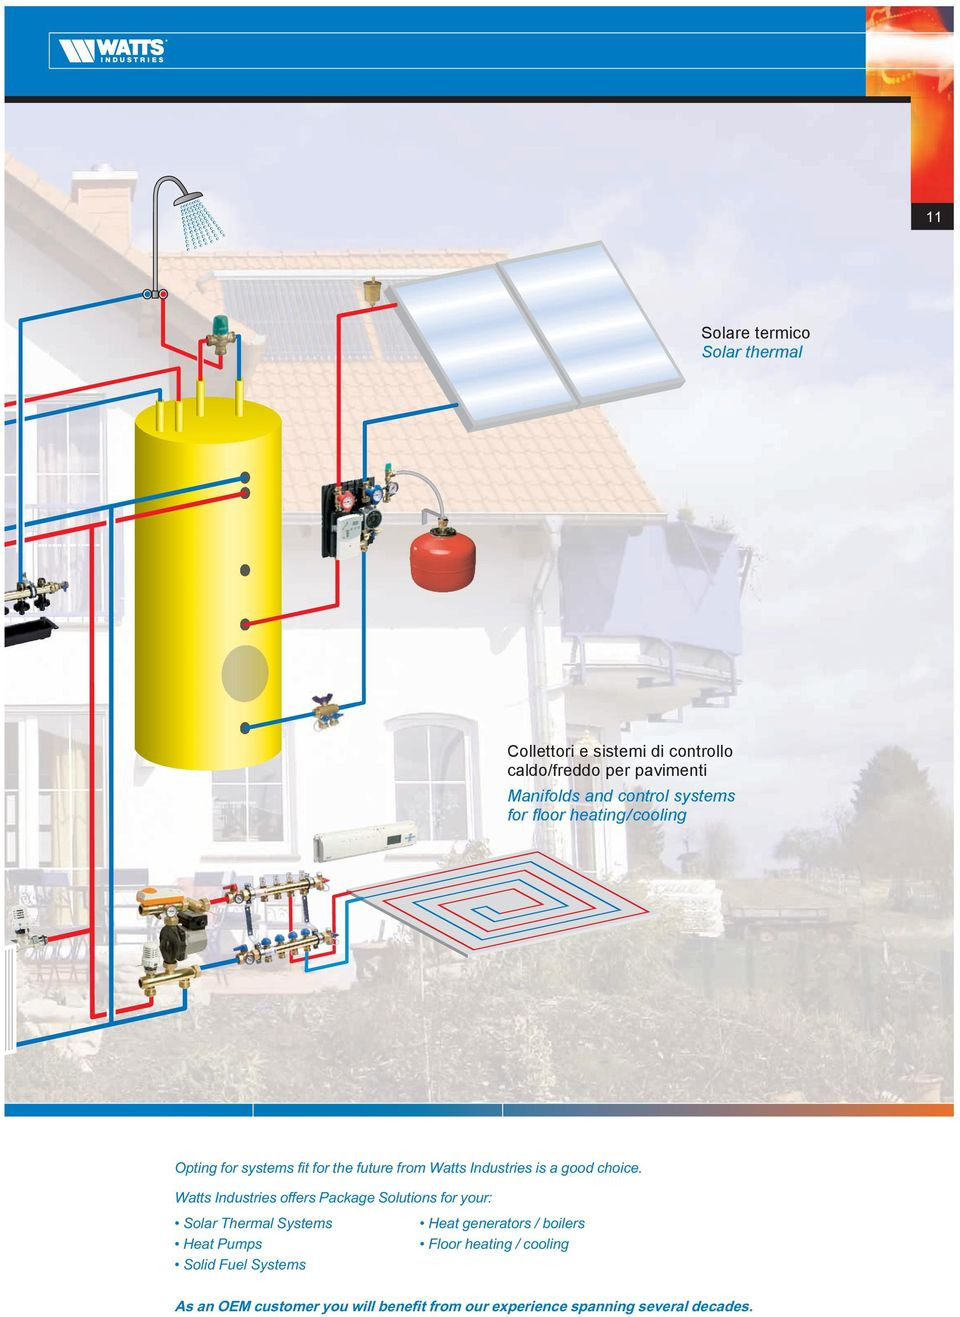 Watts Industries offers Package Solutions for your: Solar Thermal Systems Heat Pumps Solid Fuel Systems Heat